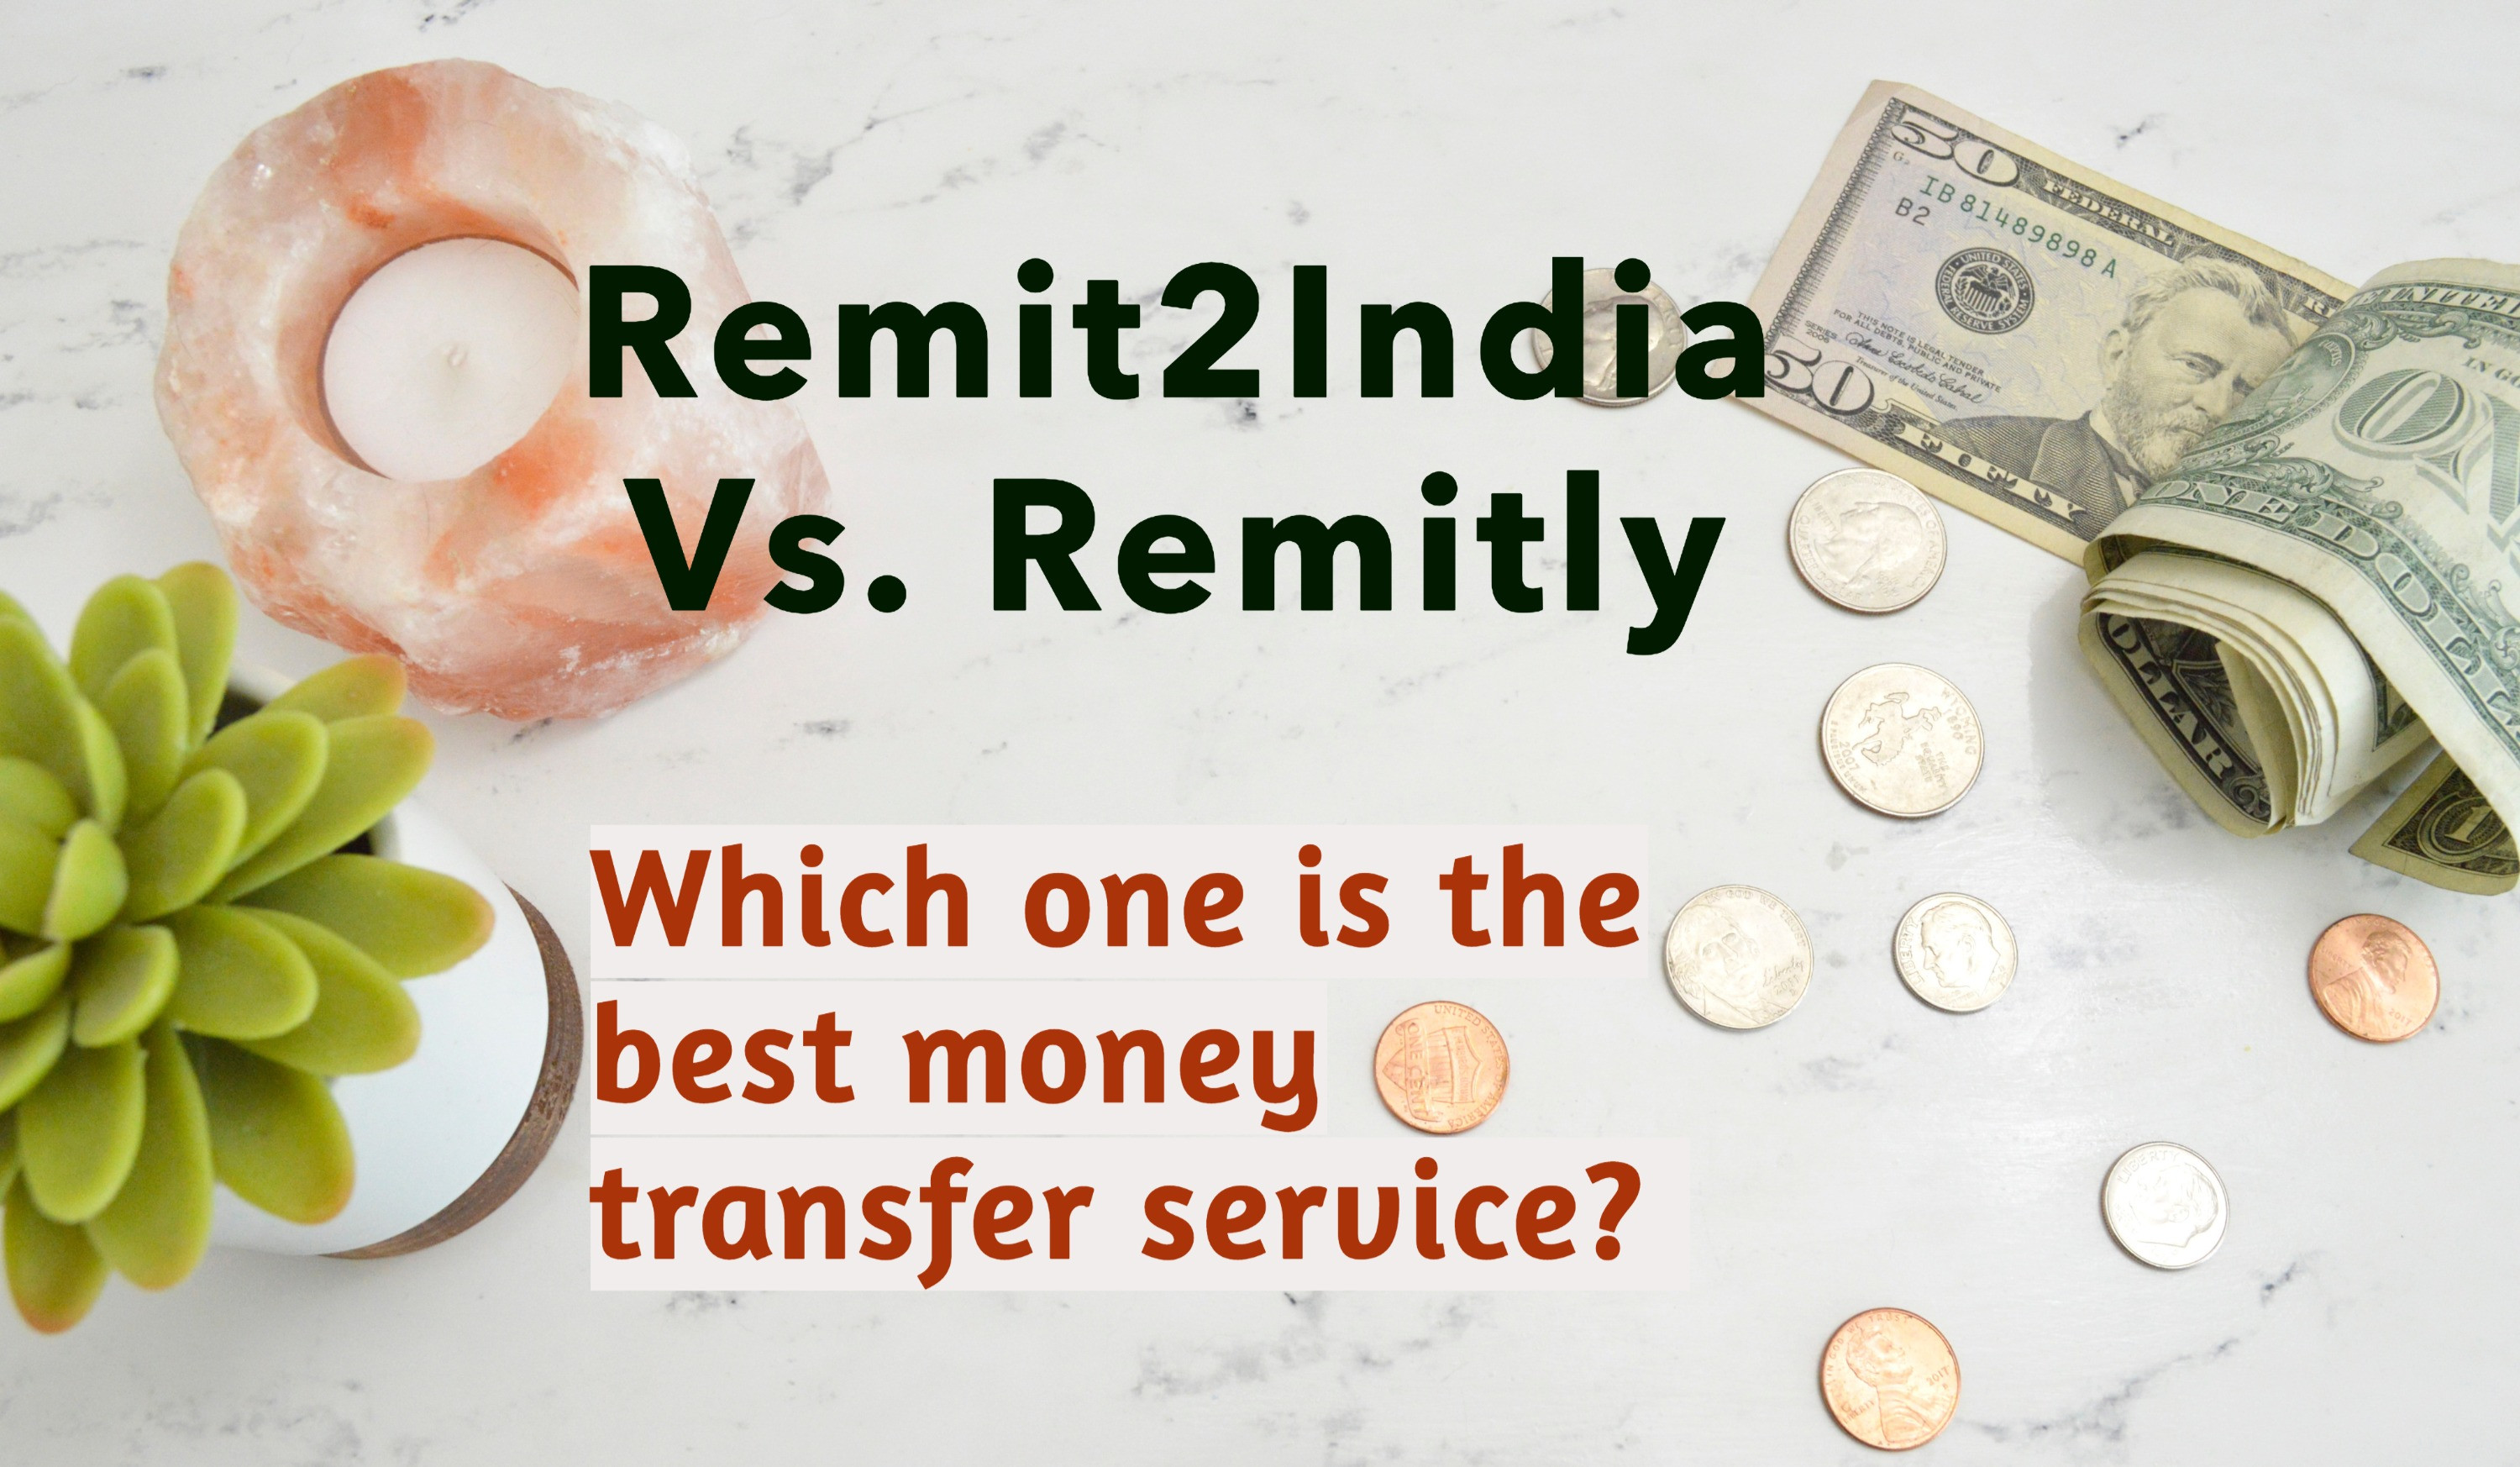 Remit2india Vs Remitly Jan 2020